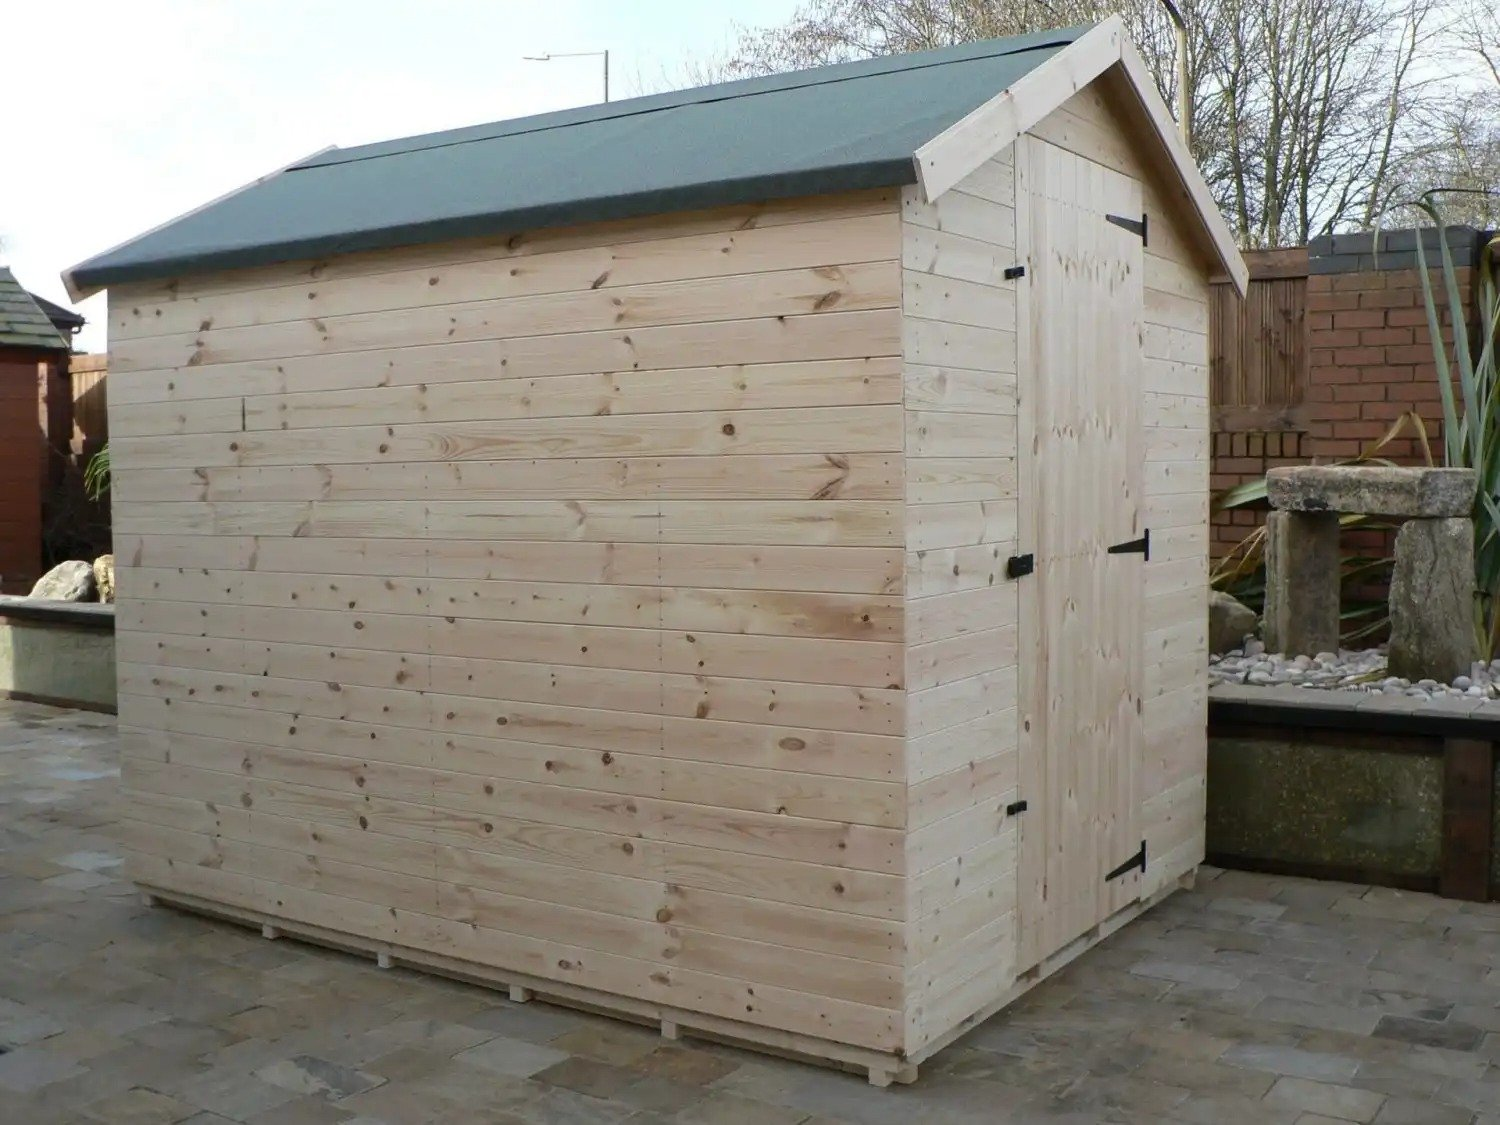 8' X 6' Apex Shed No Windows